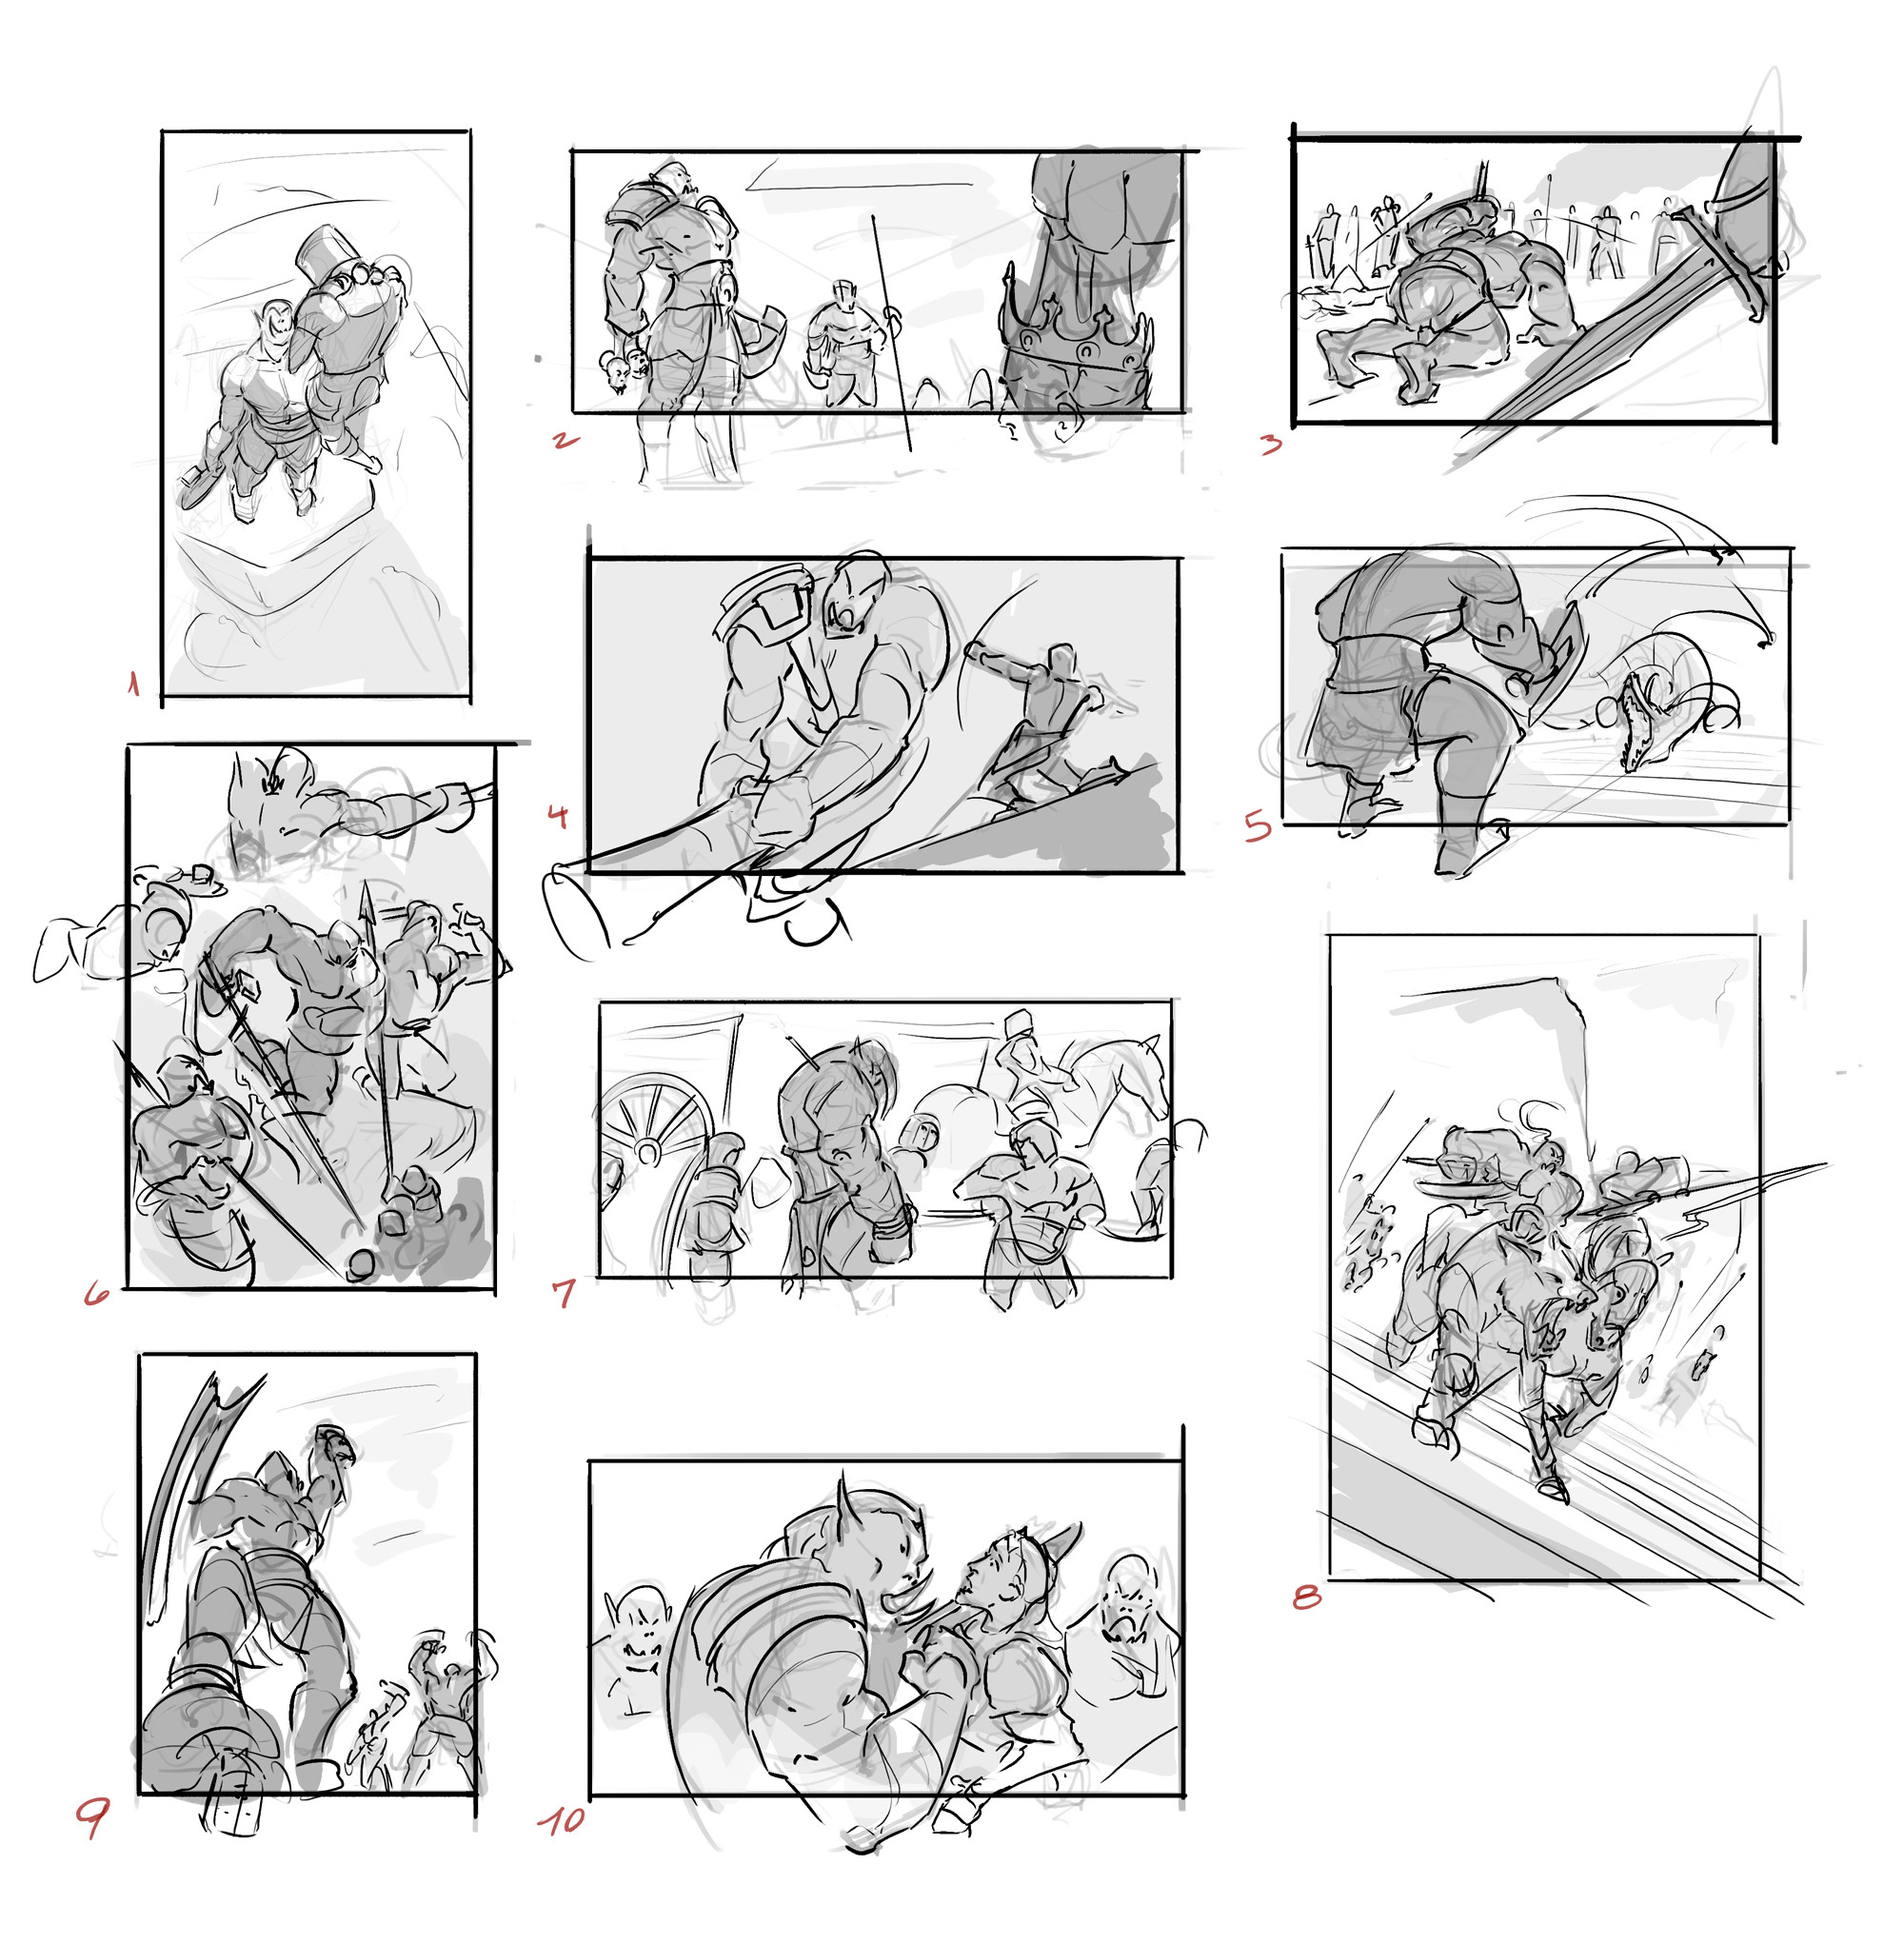 Some early thumbnails, exploring the composition and way to tell the idea